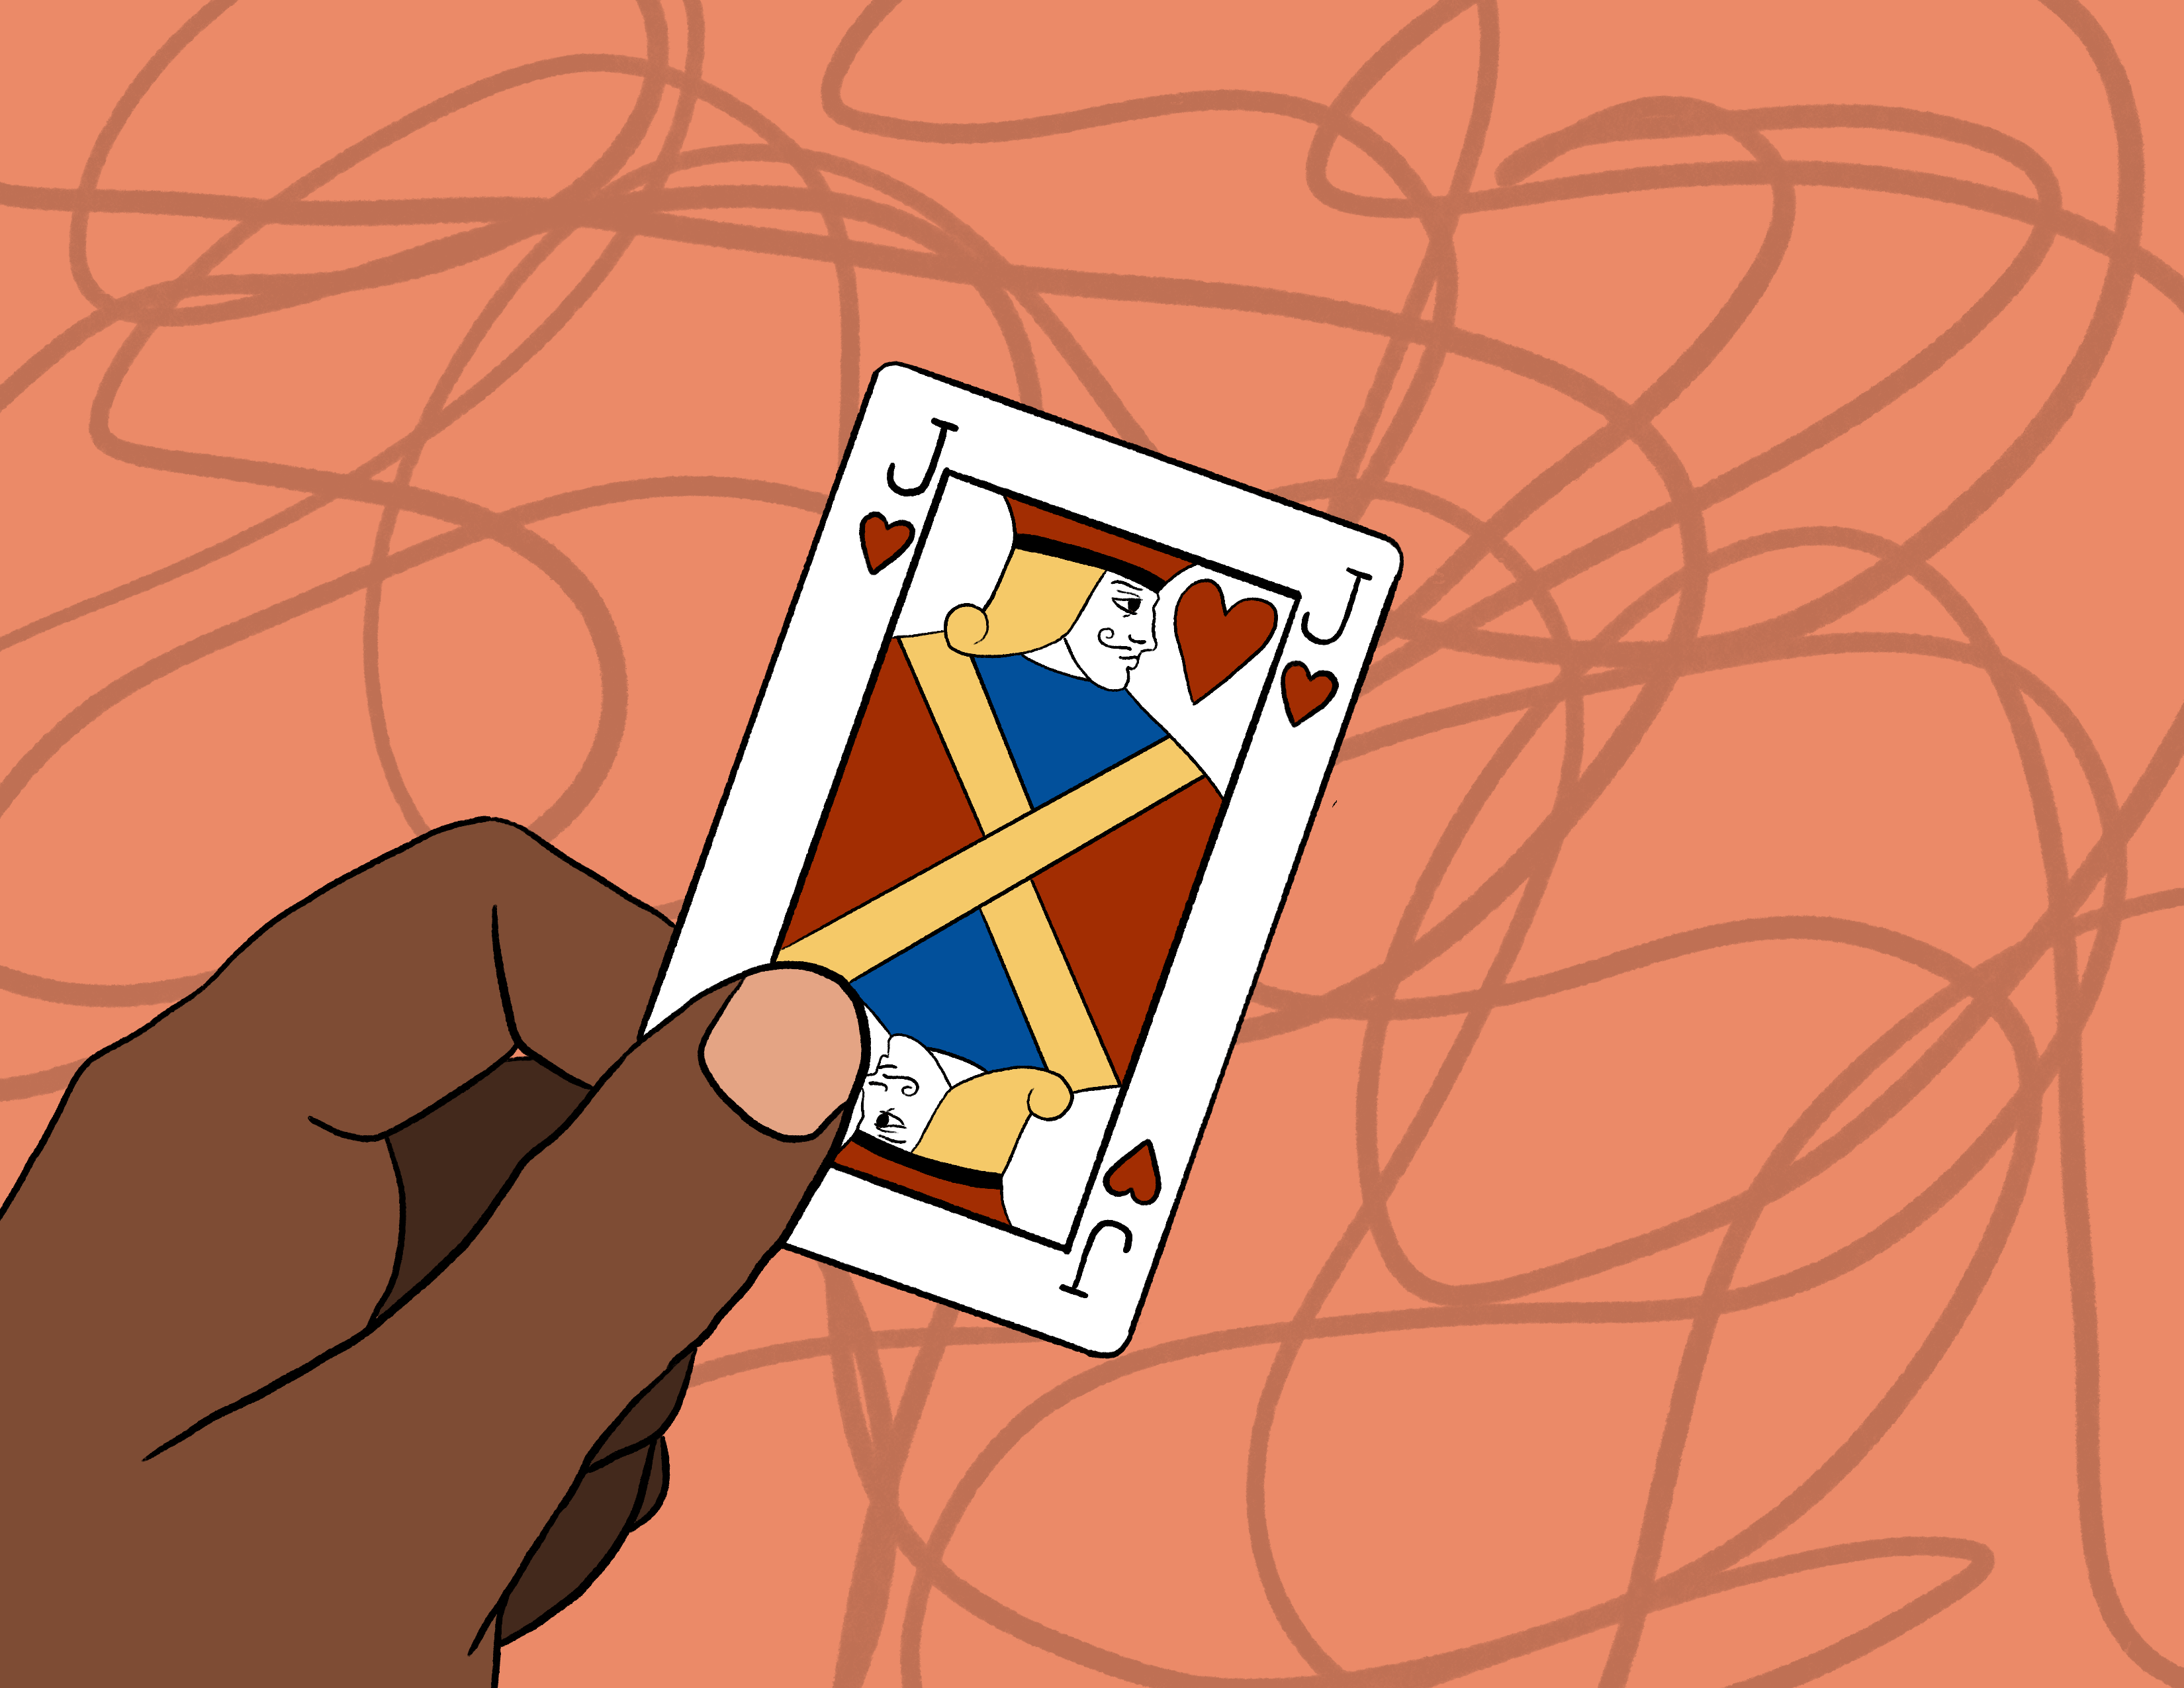 a jack of hearts playing card